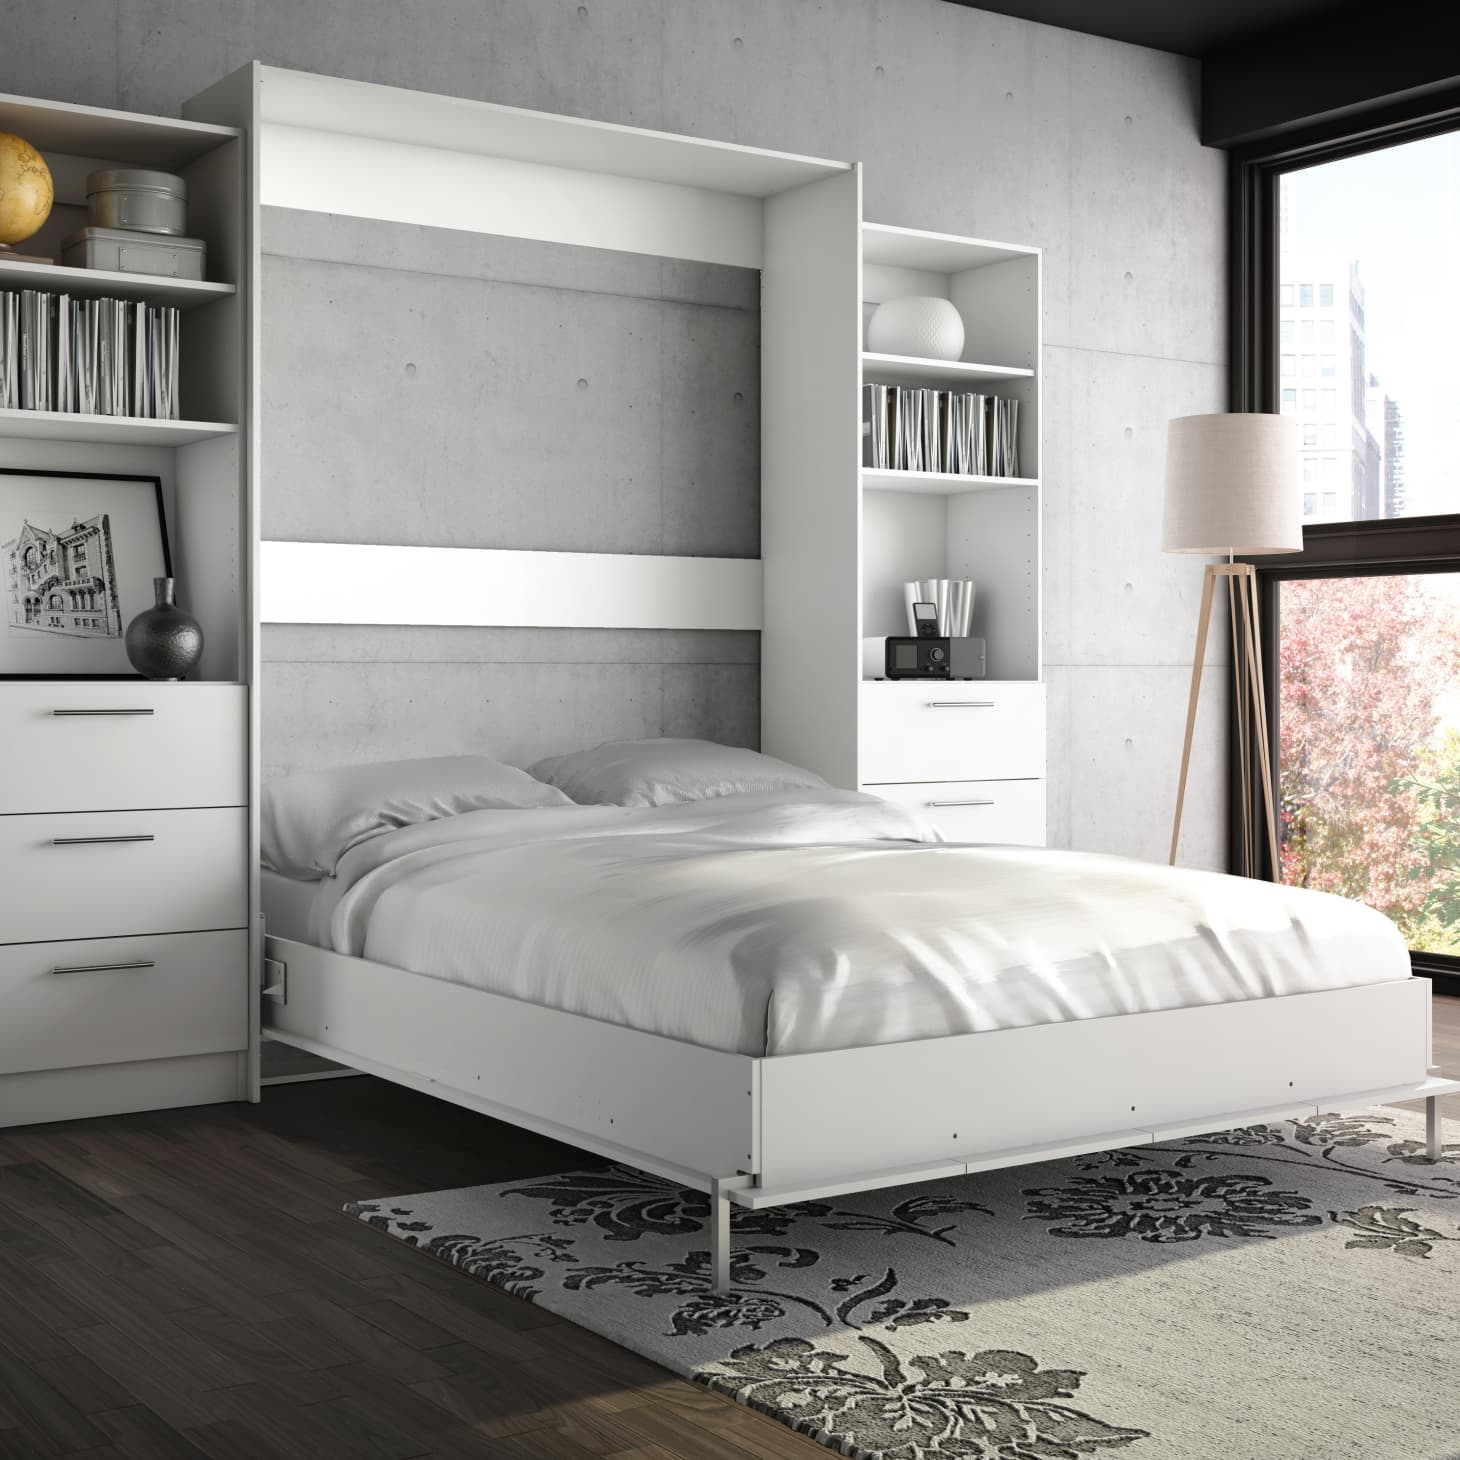 Admirable 10 Murphy Beds Wall Beds For Small Spaces Apartment Therapy Home Interior And Landscaping Ologienasavecom